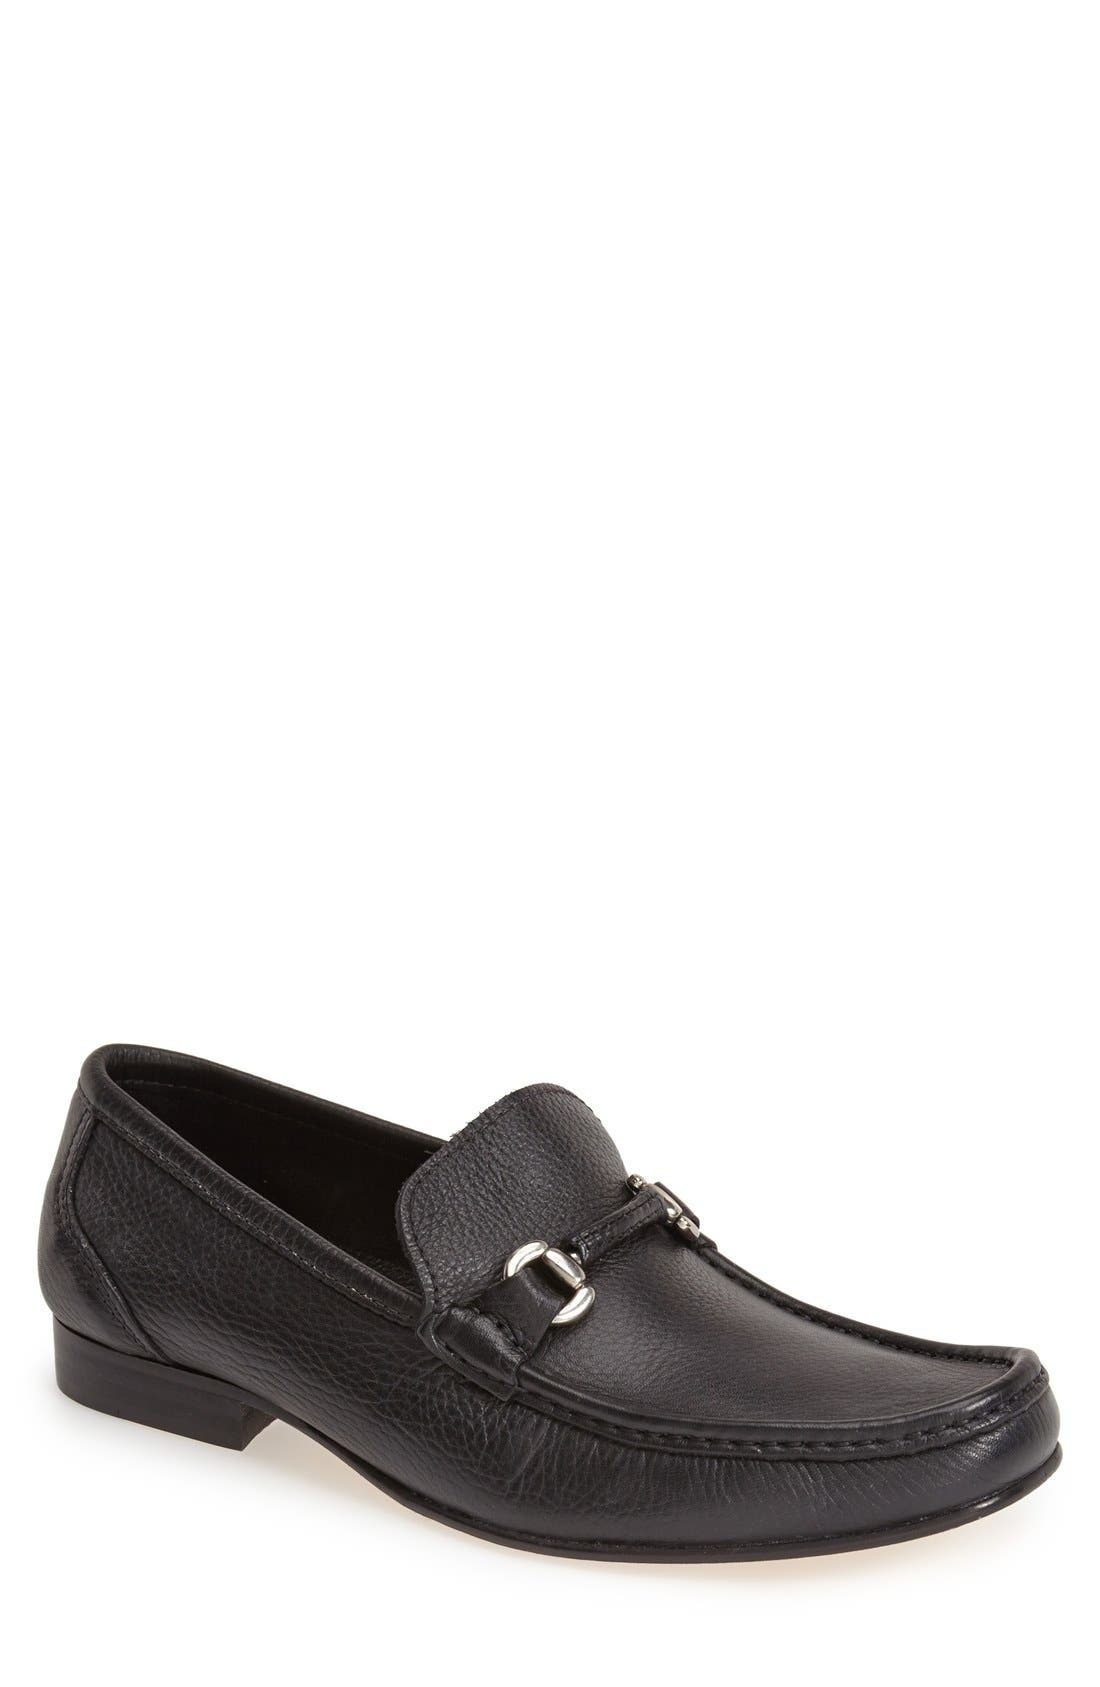 Main Image - Sandro Moscoloni 'San Remo' Leather Bit Loafer (Men)